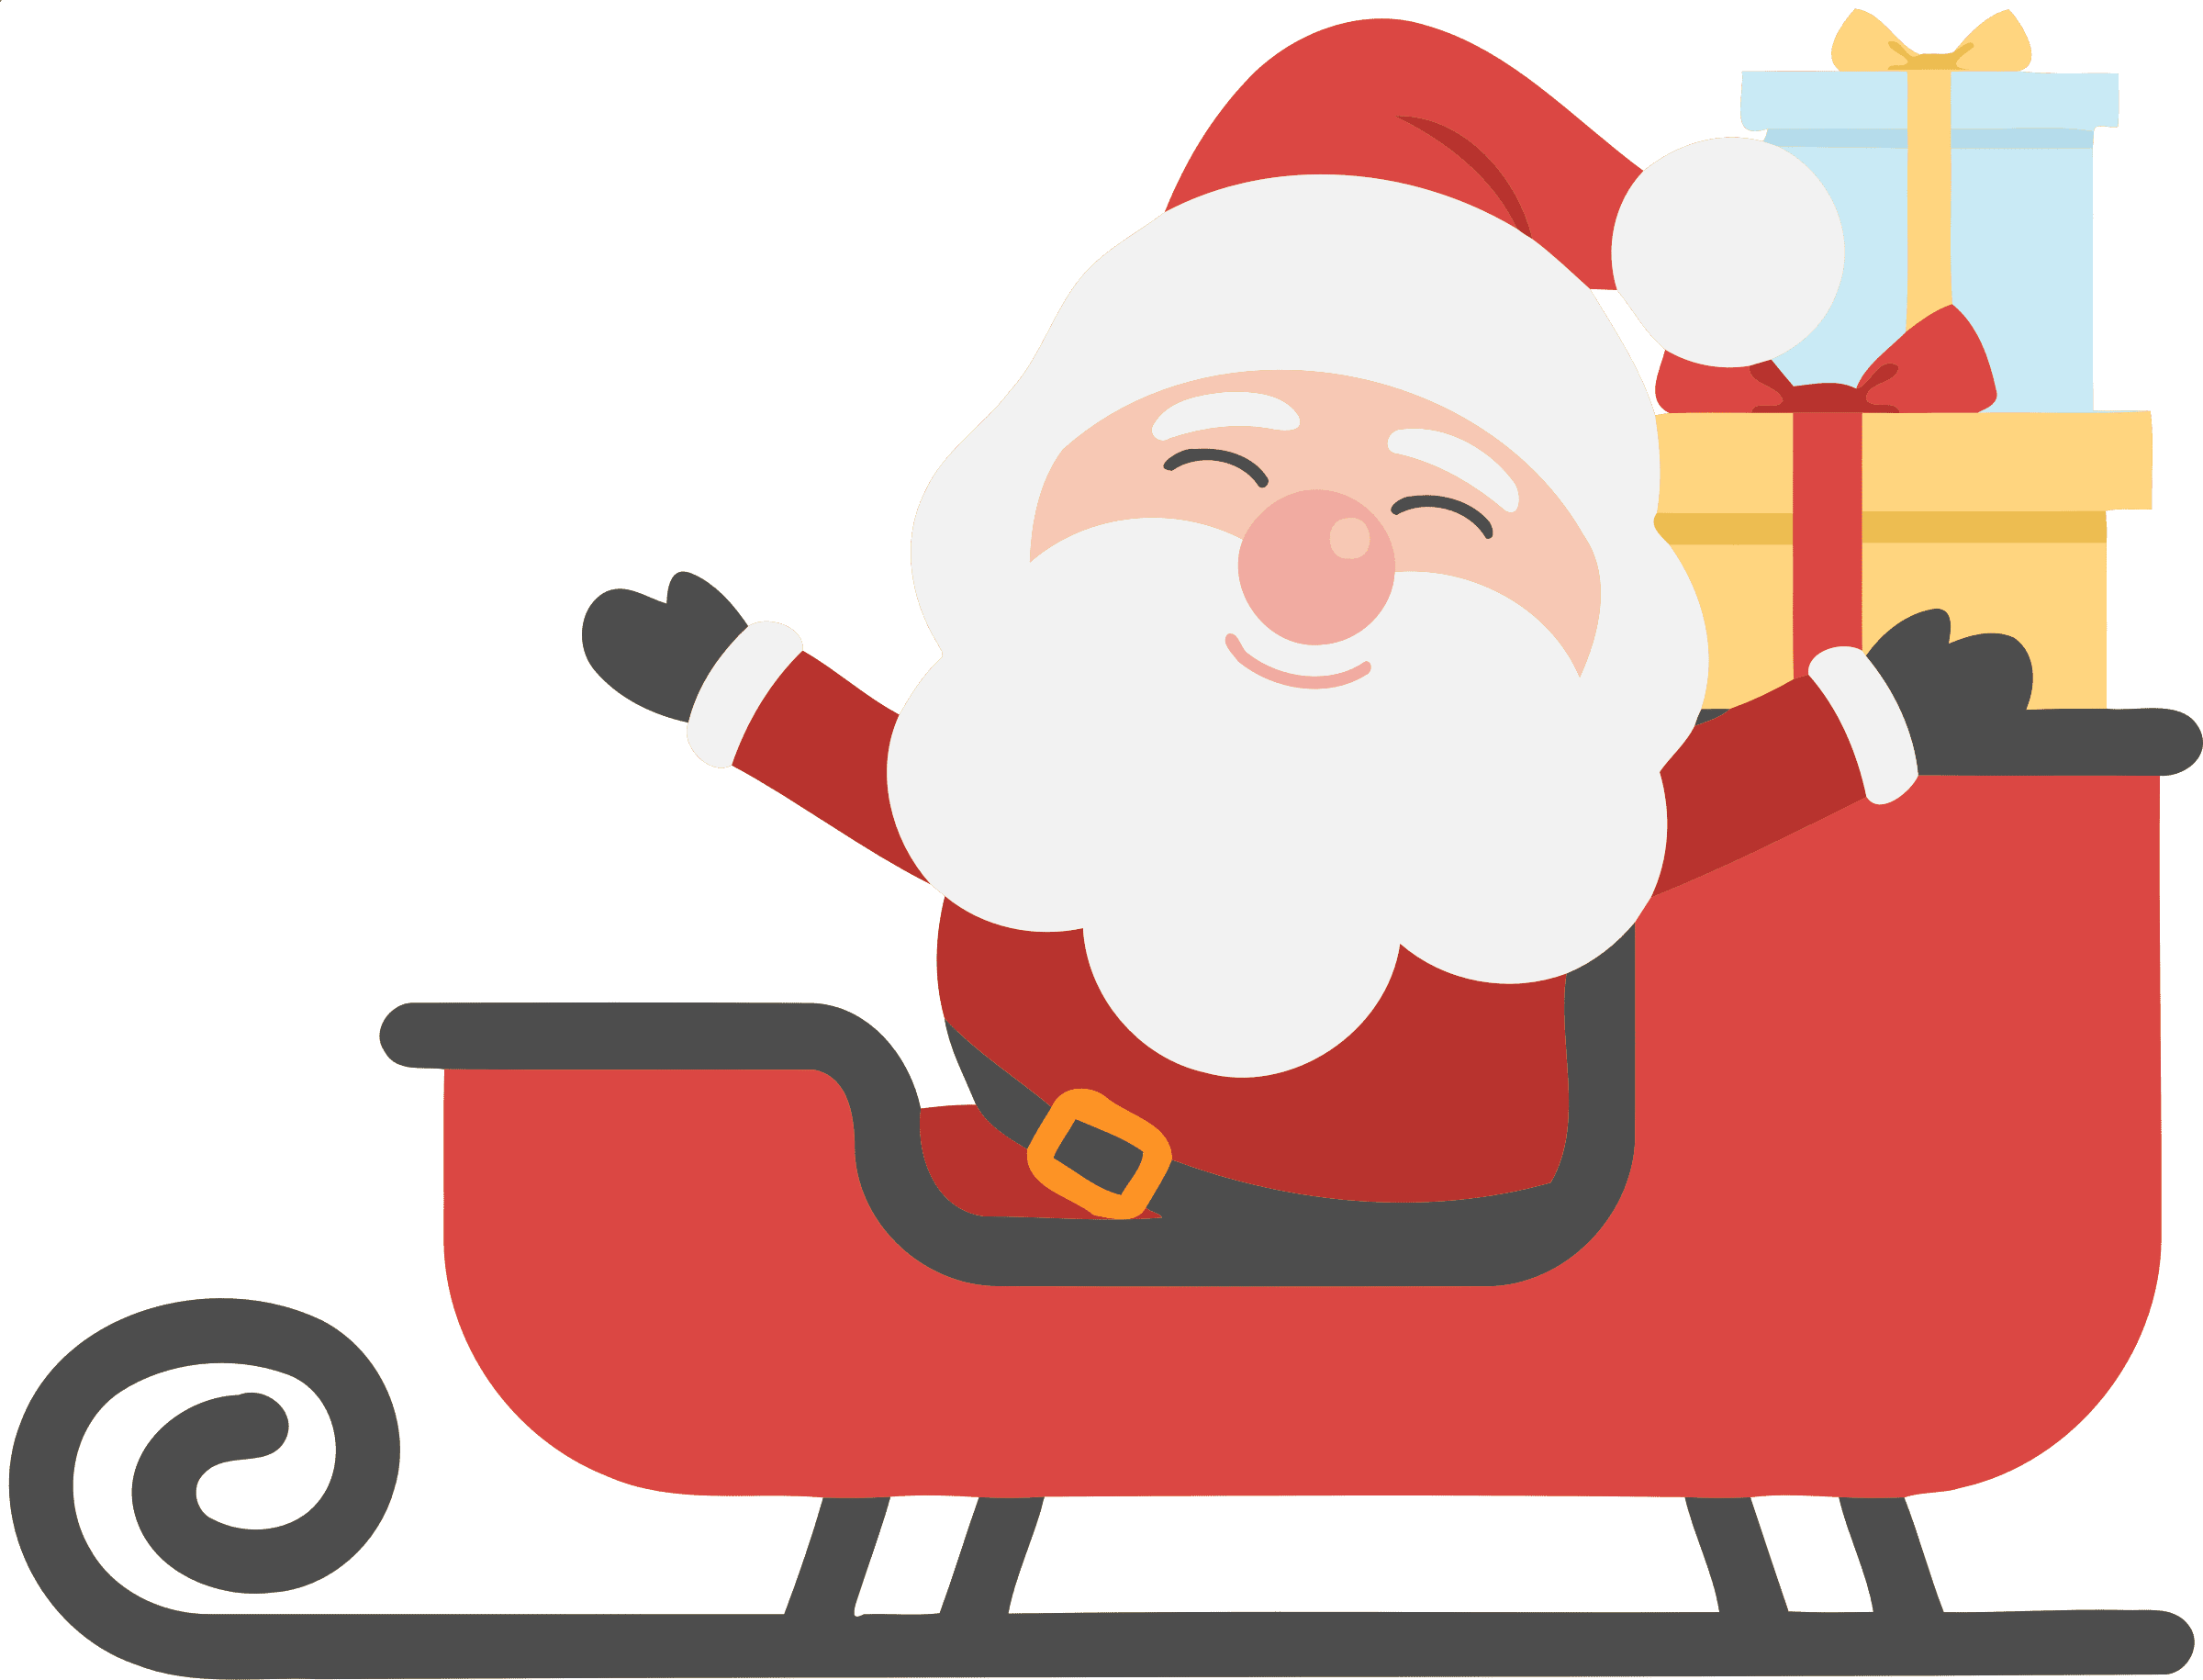 Free Png Santa Legal Symbols - Free Santa Clipart Images for Your Holiday Projects